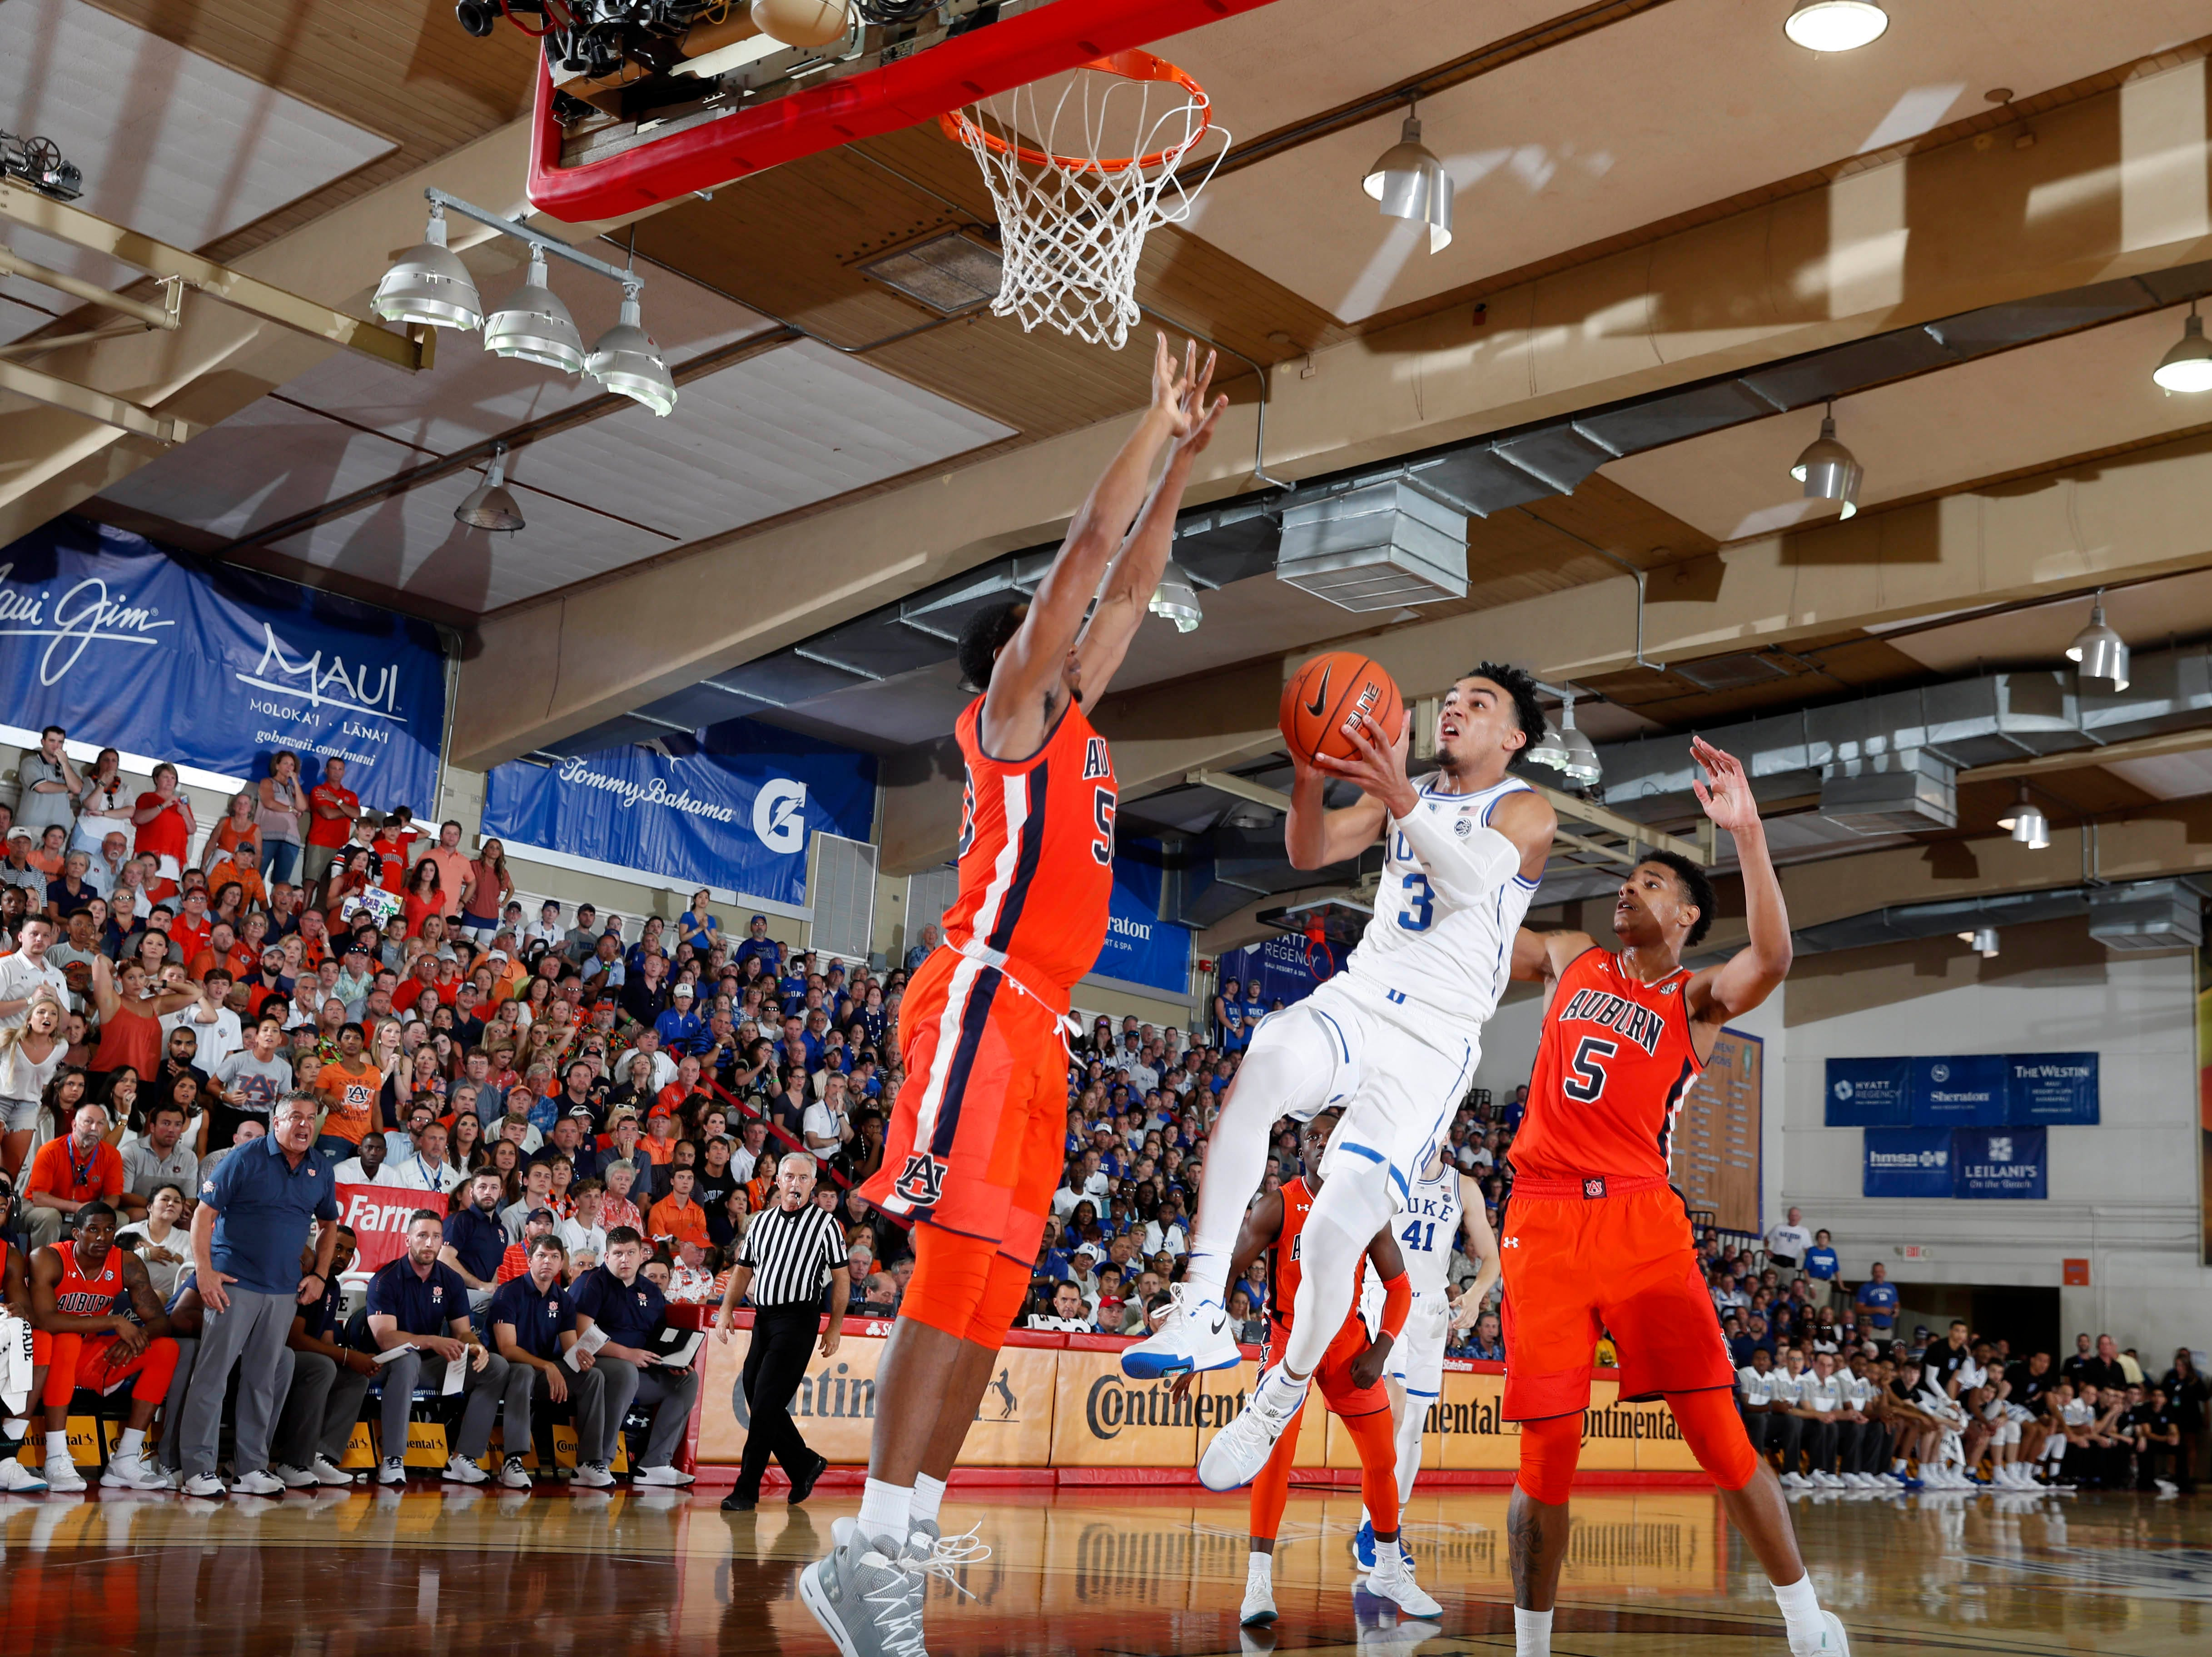 Nov 20, 2018; Lahaina, HI, USA; Duke Blue Devils guard Tre Jones (3) takes a shot against the Auburn Tigers in the first half during the second round of the Maui Jim Maui Invitational at Lahaina Civic Center. Mandatory Credit: Brian Spurlock-USA TODAY Sports